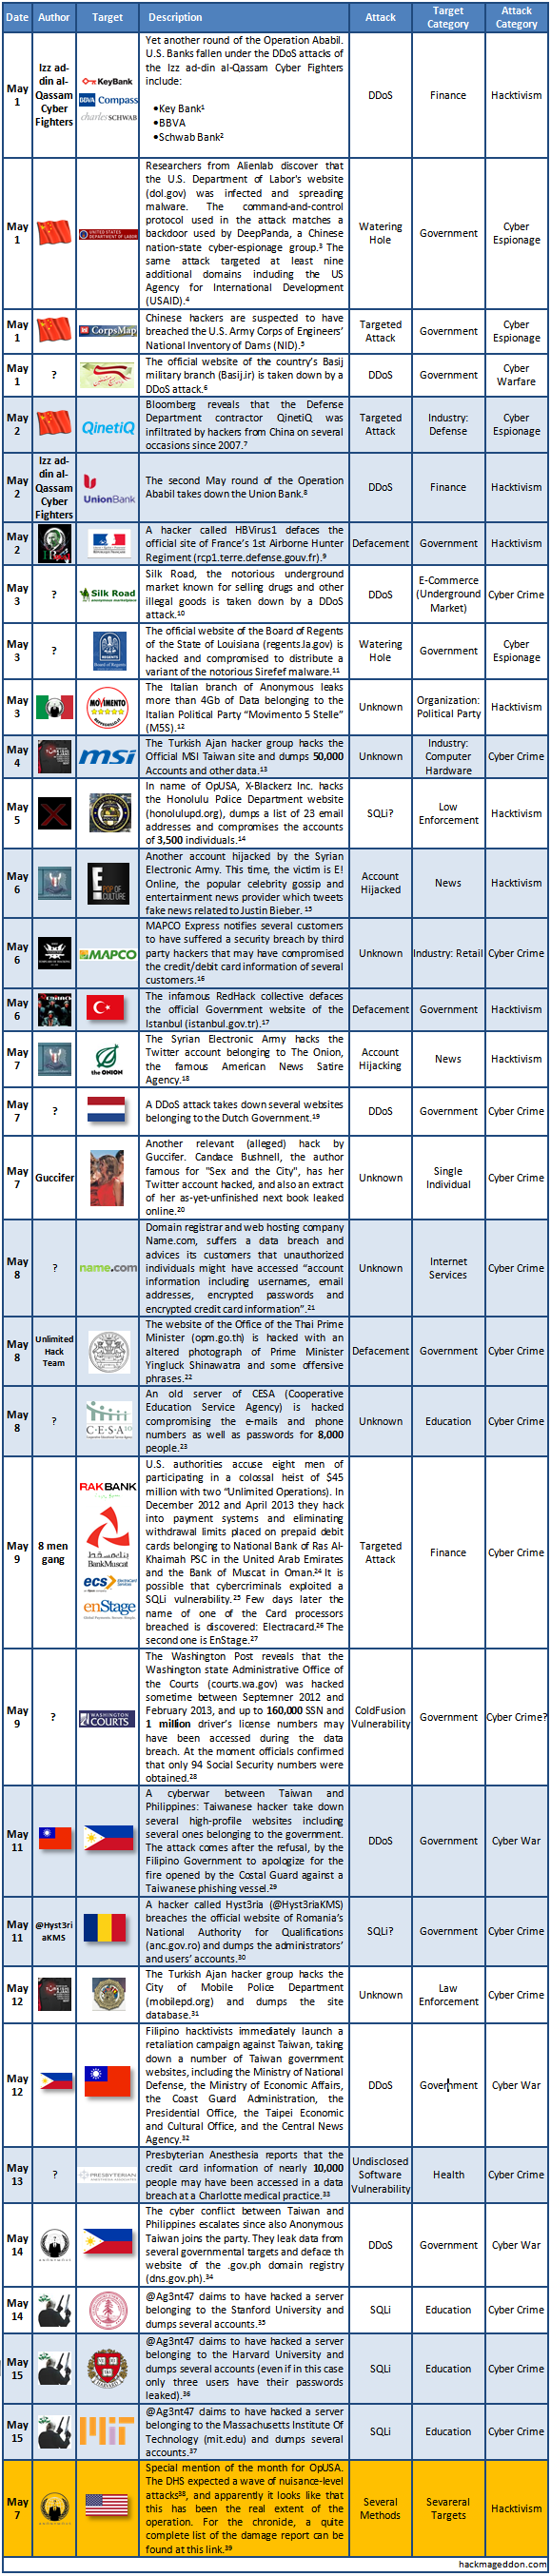 May 2013 Cyber Attacks Timeline Part I